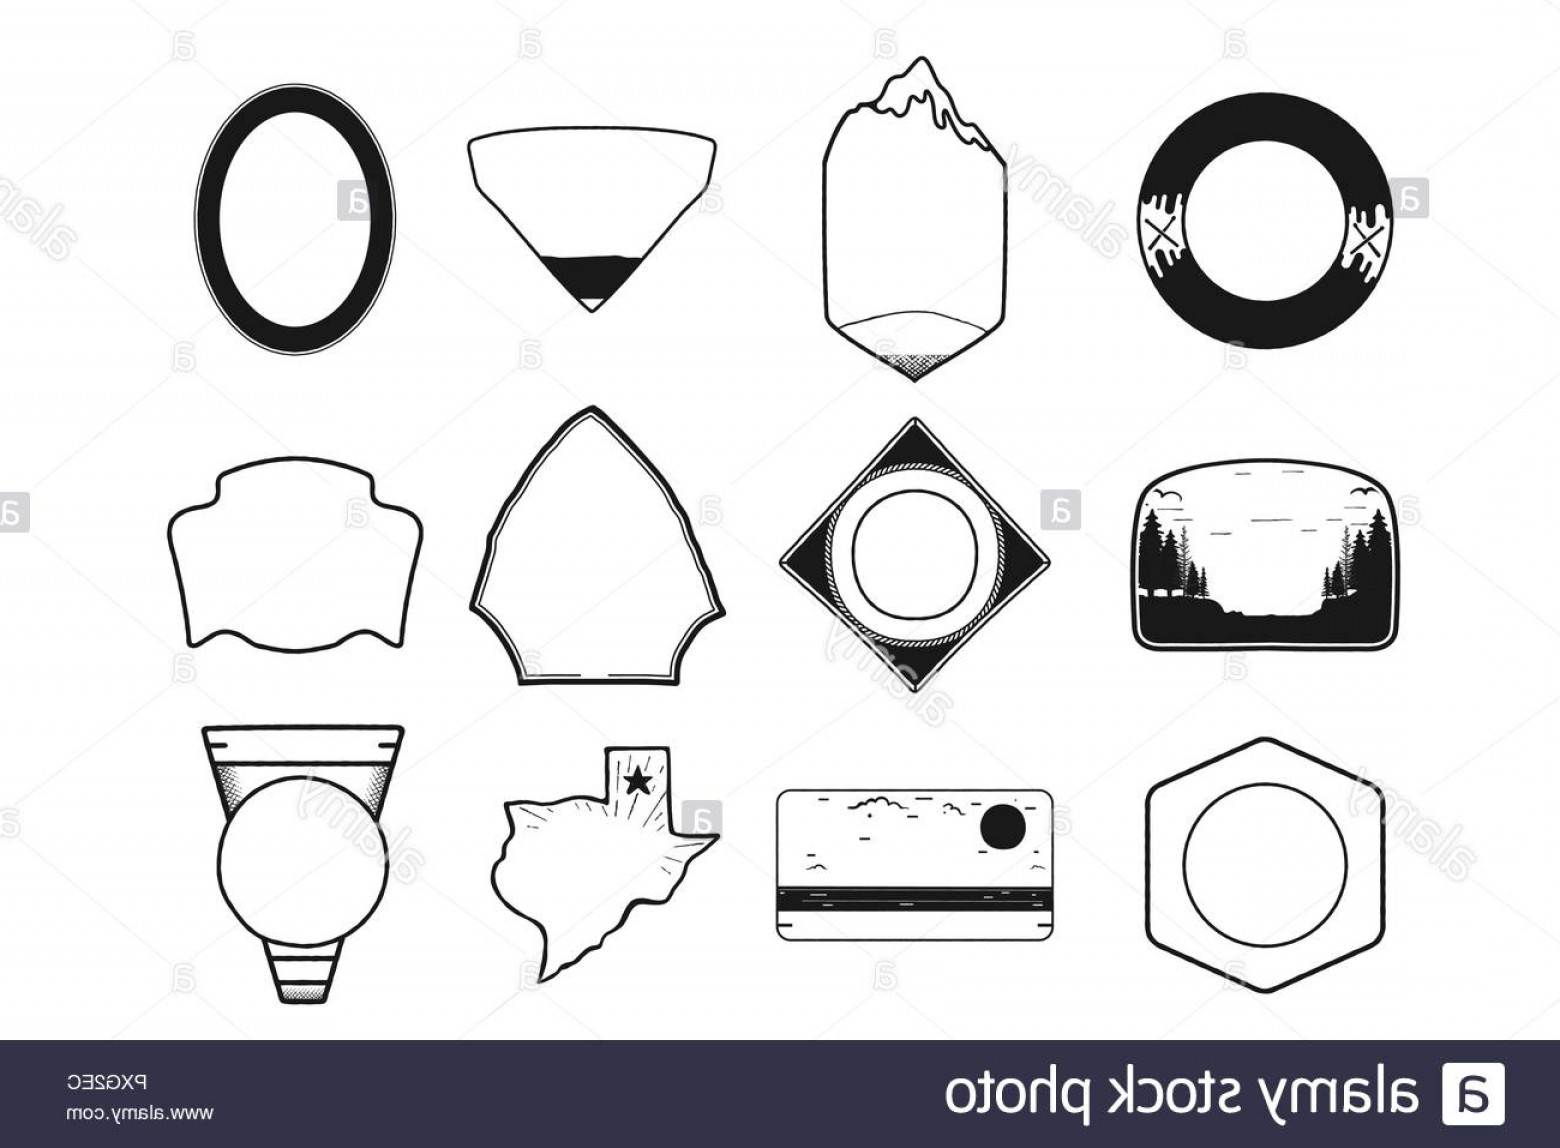 Texas Clip Art Vector: Set Of Black Camping Badge Shapes Included Texas State Icon Line Art Design Stock Vector Objects Isolated On White Background Image